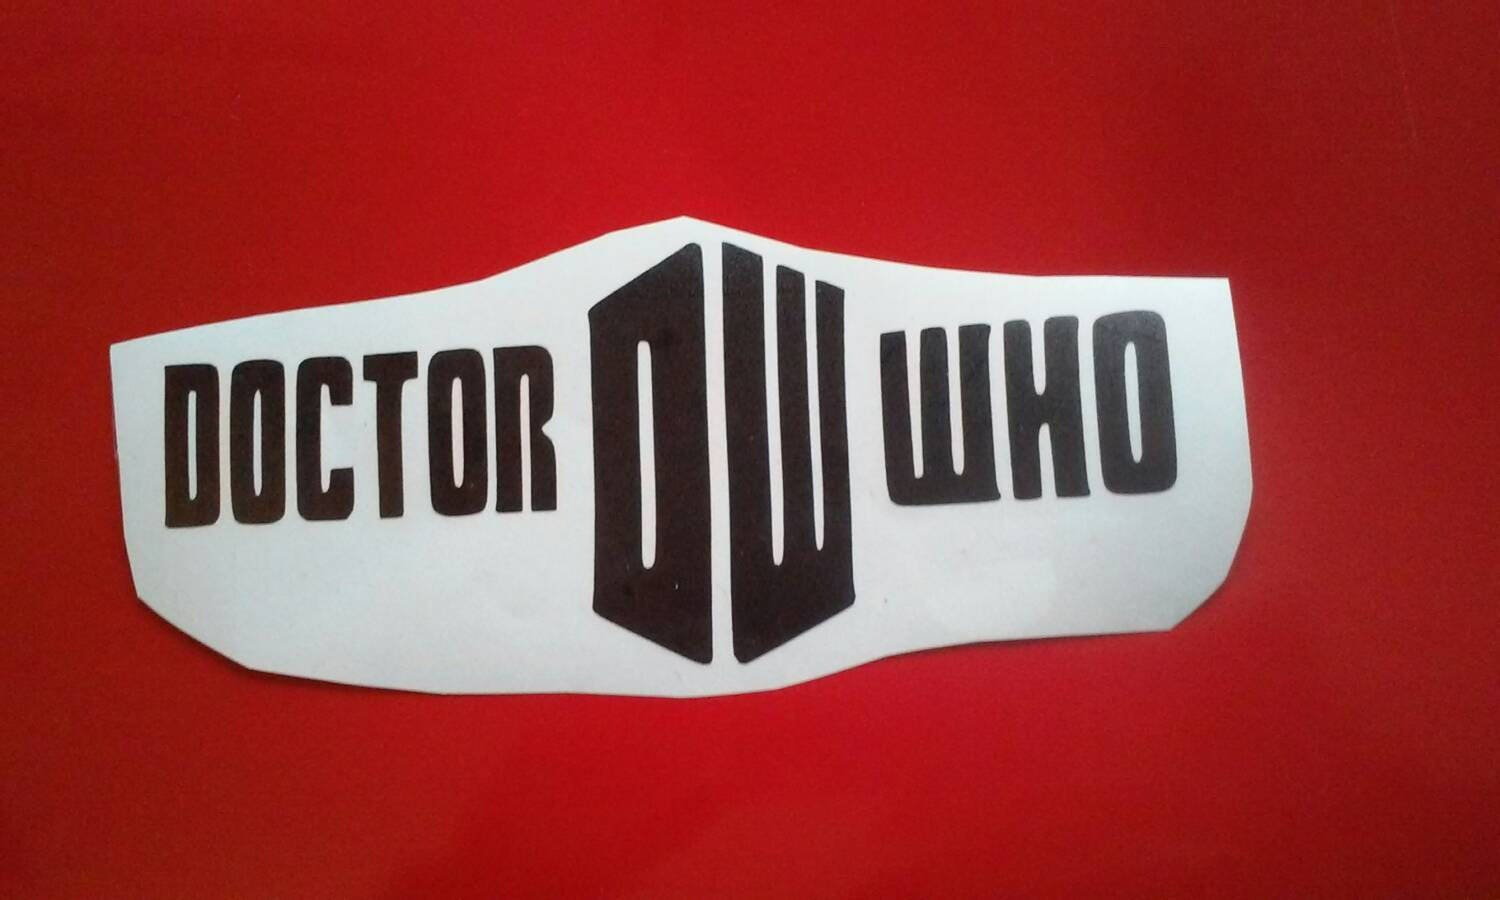 Doctor who wall decaldr who dr who decalsdrwho wall zoom amipublicfo Choice Image